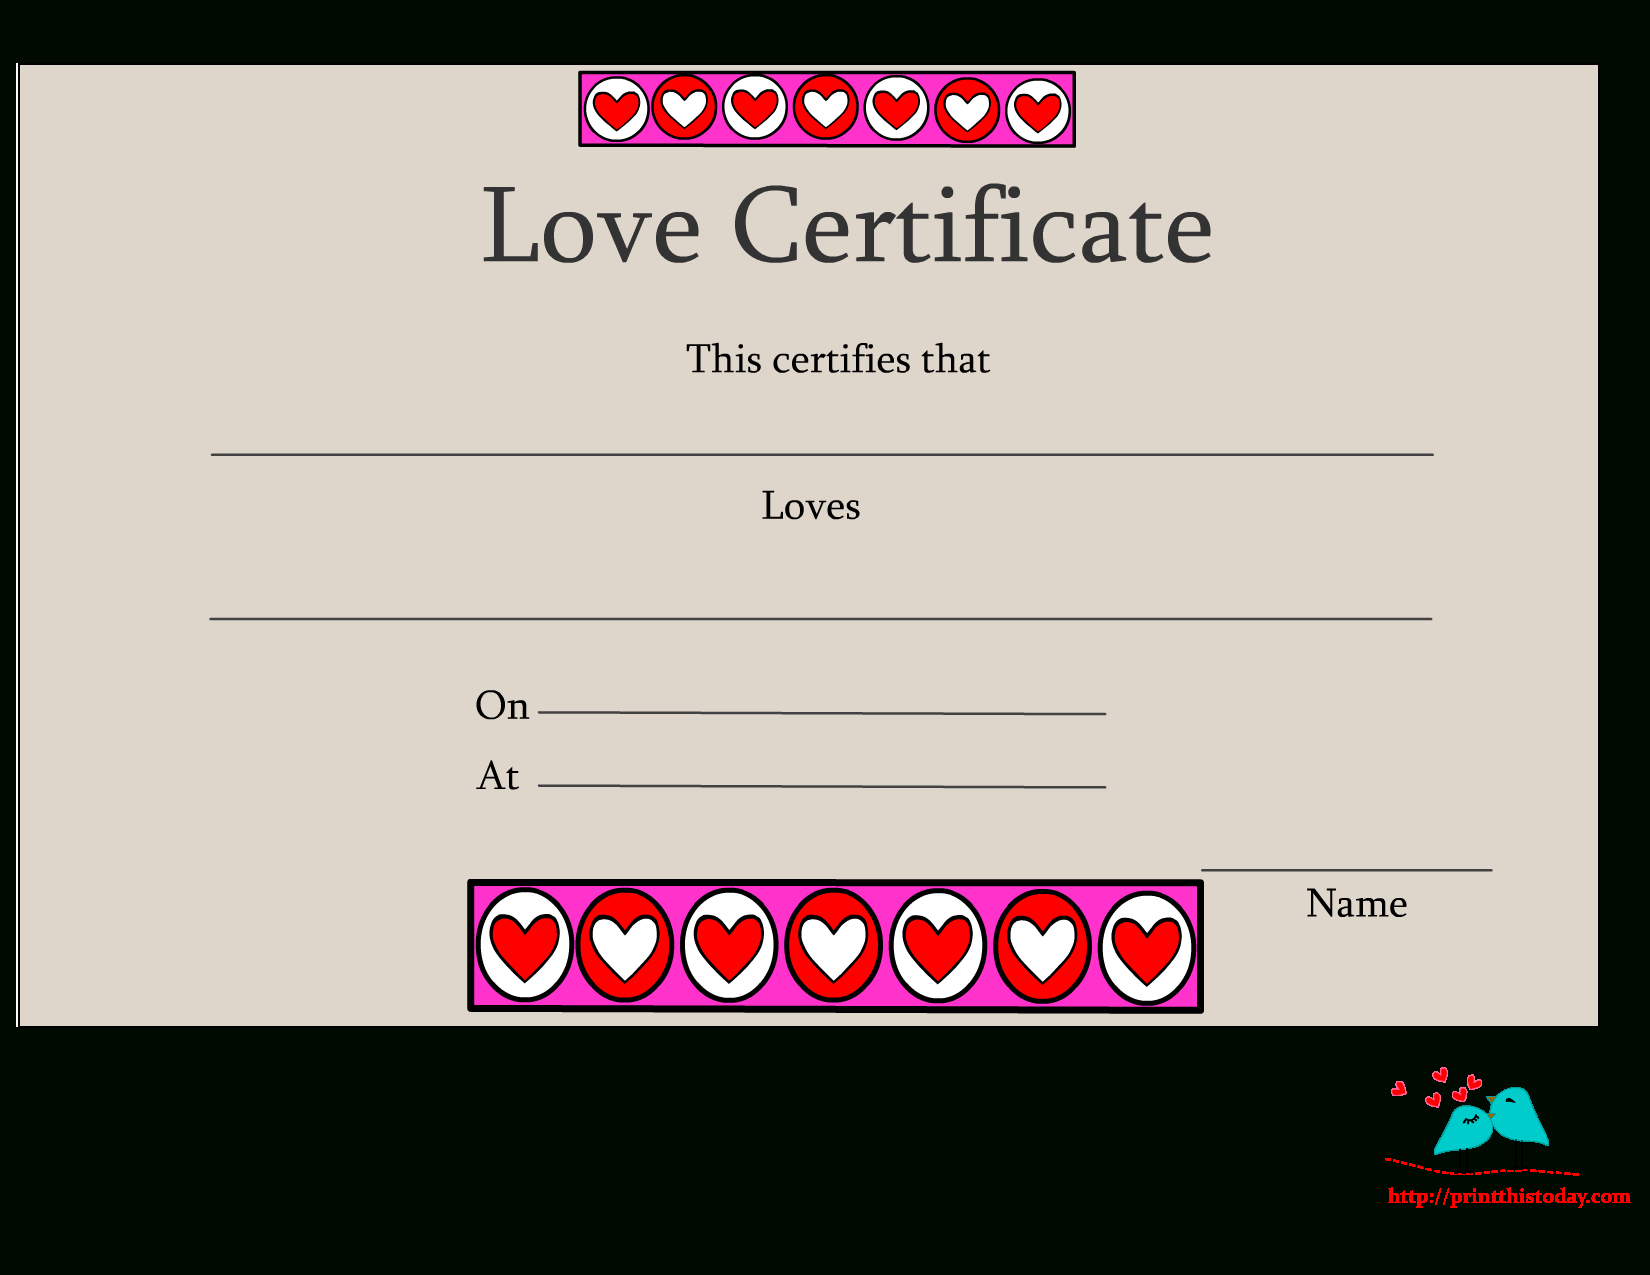 Free Printable Love Certificates - Free Printable Love Certificates For Him